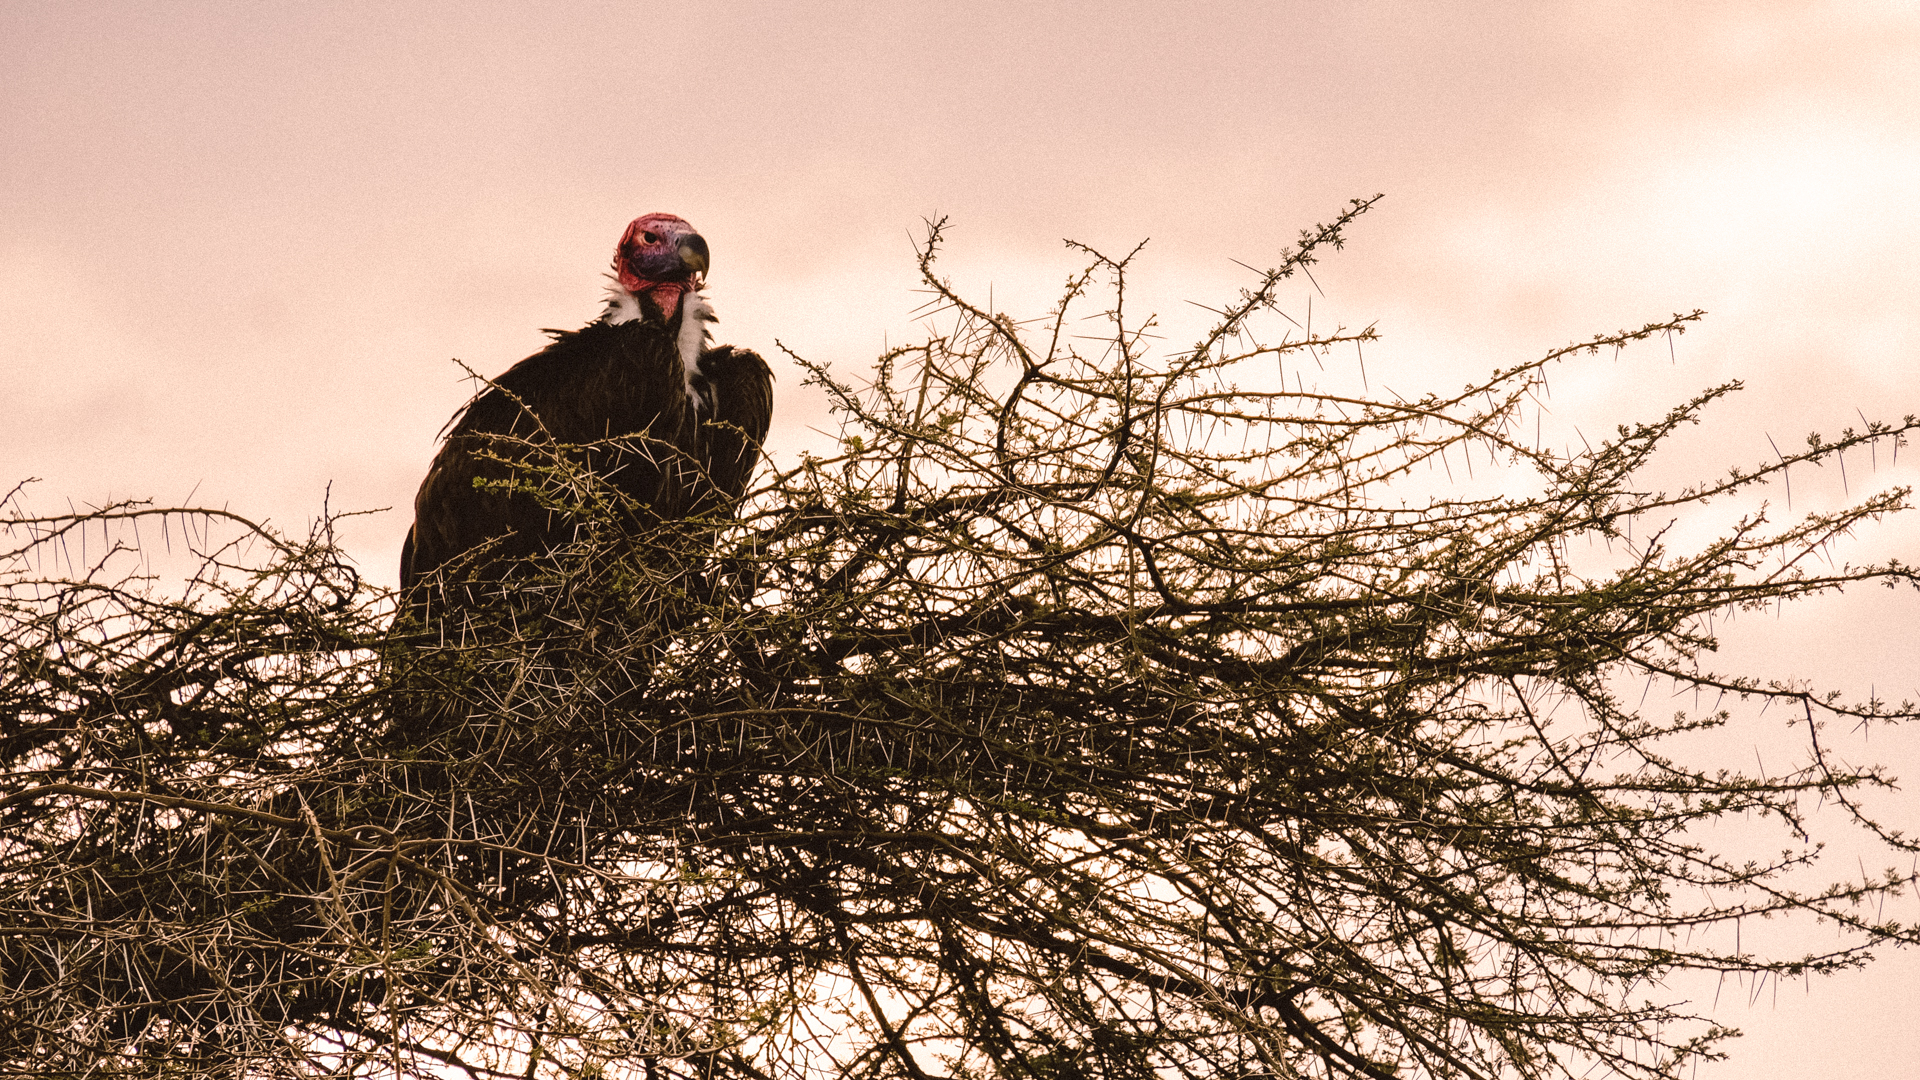 A pink-headed lappet-faced vulture / Nubian vulture sitting in an acacia tree, waiting for its dinner, in the evening in the Serengeti National Park, Tanzania